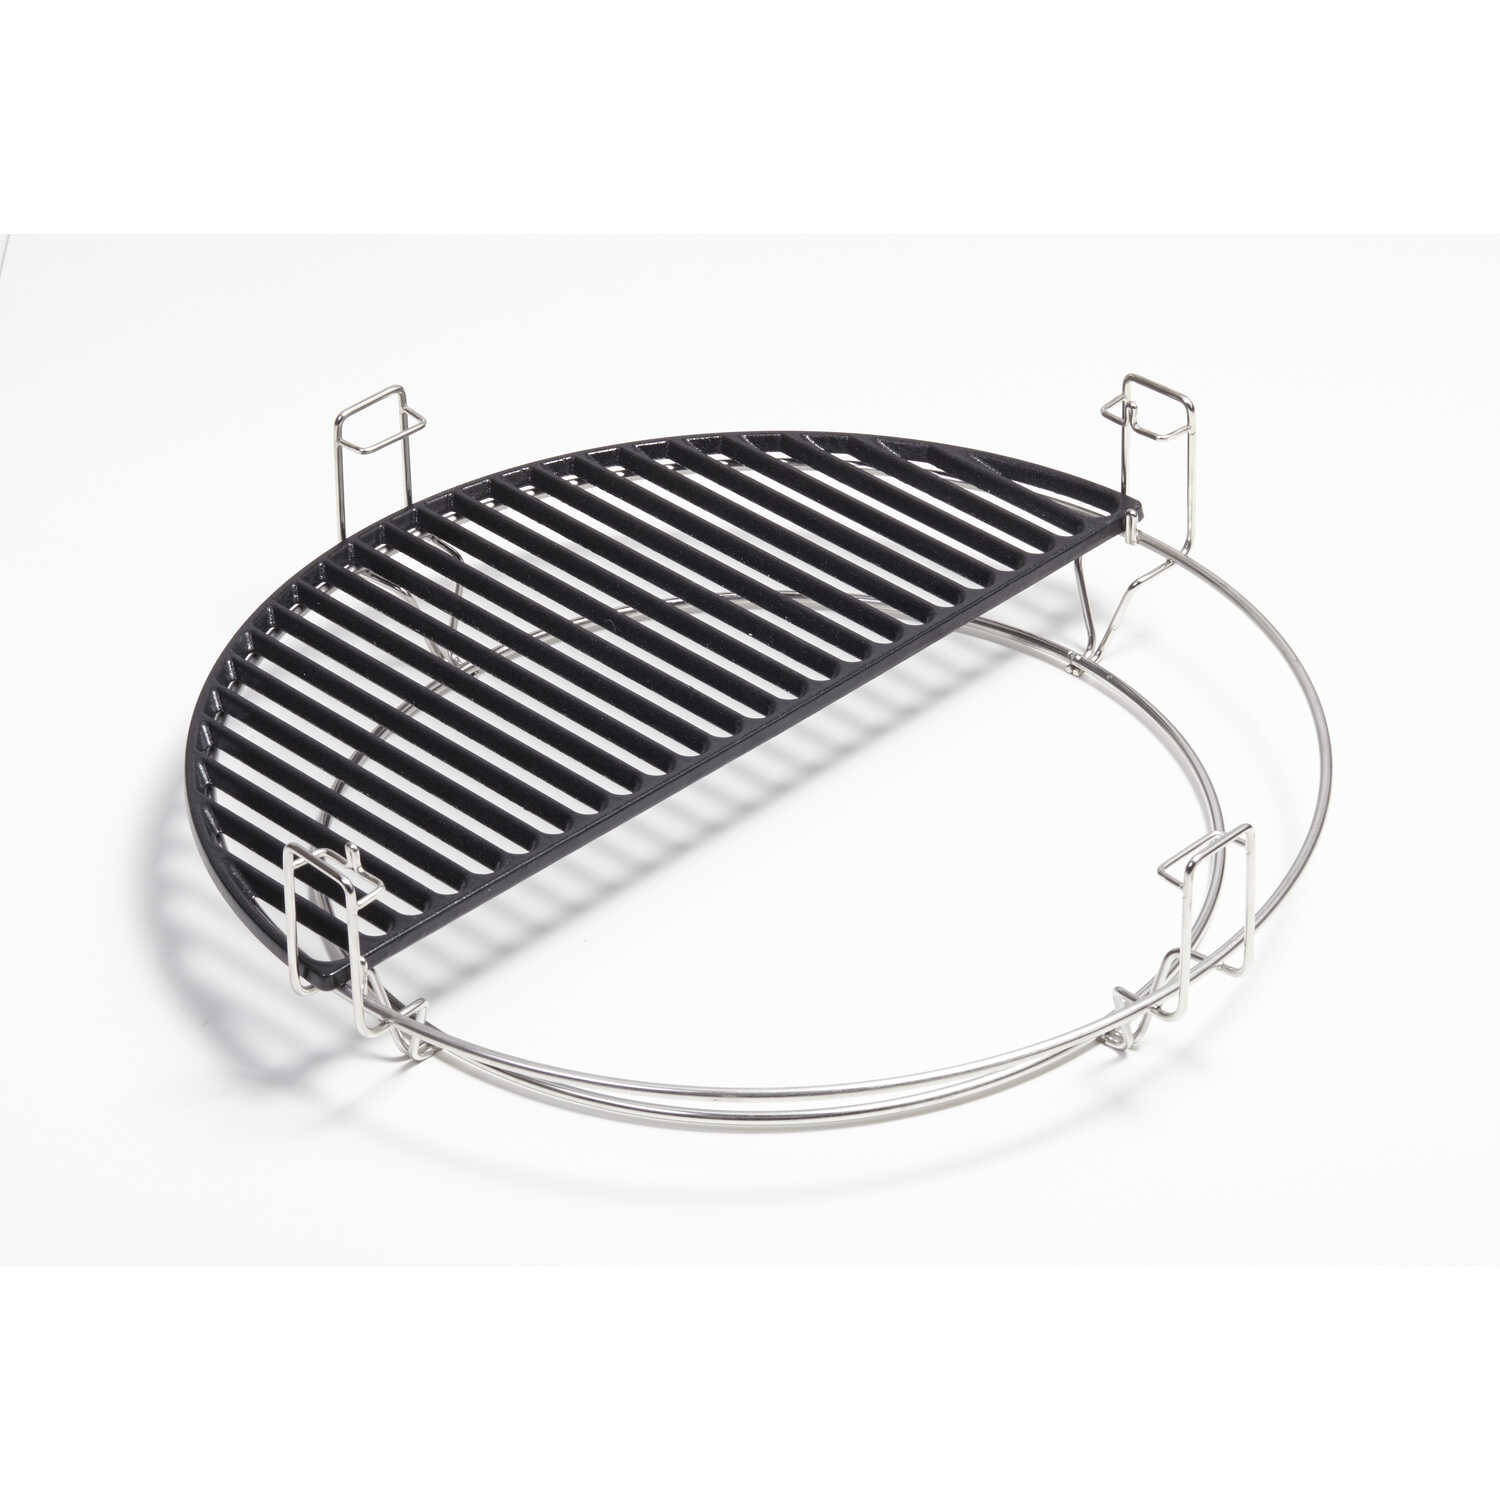 Kamado Joe Cast Iron Grill Cooking Grate Kamado Joe Big